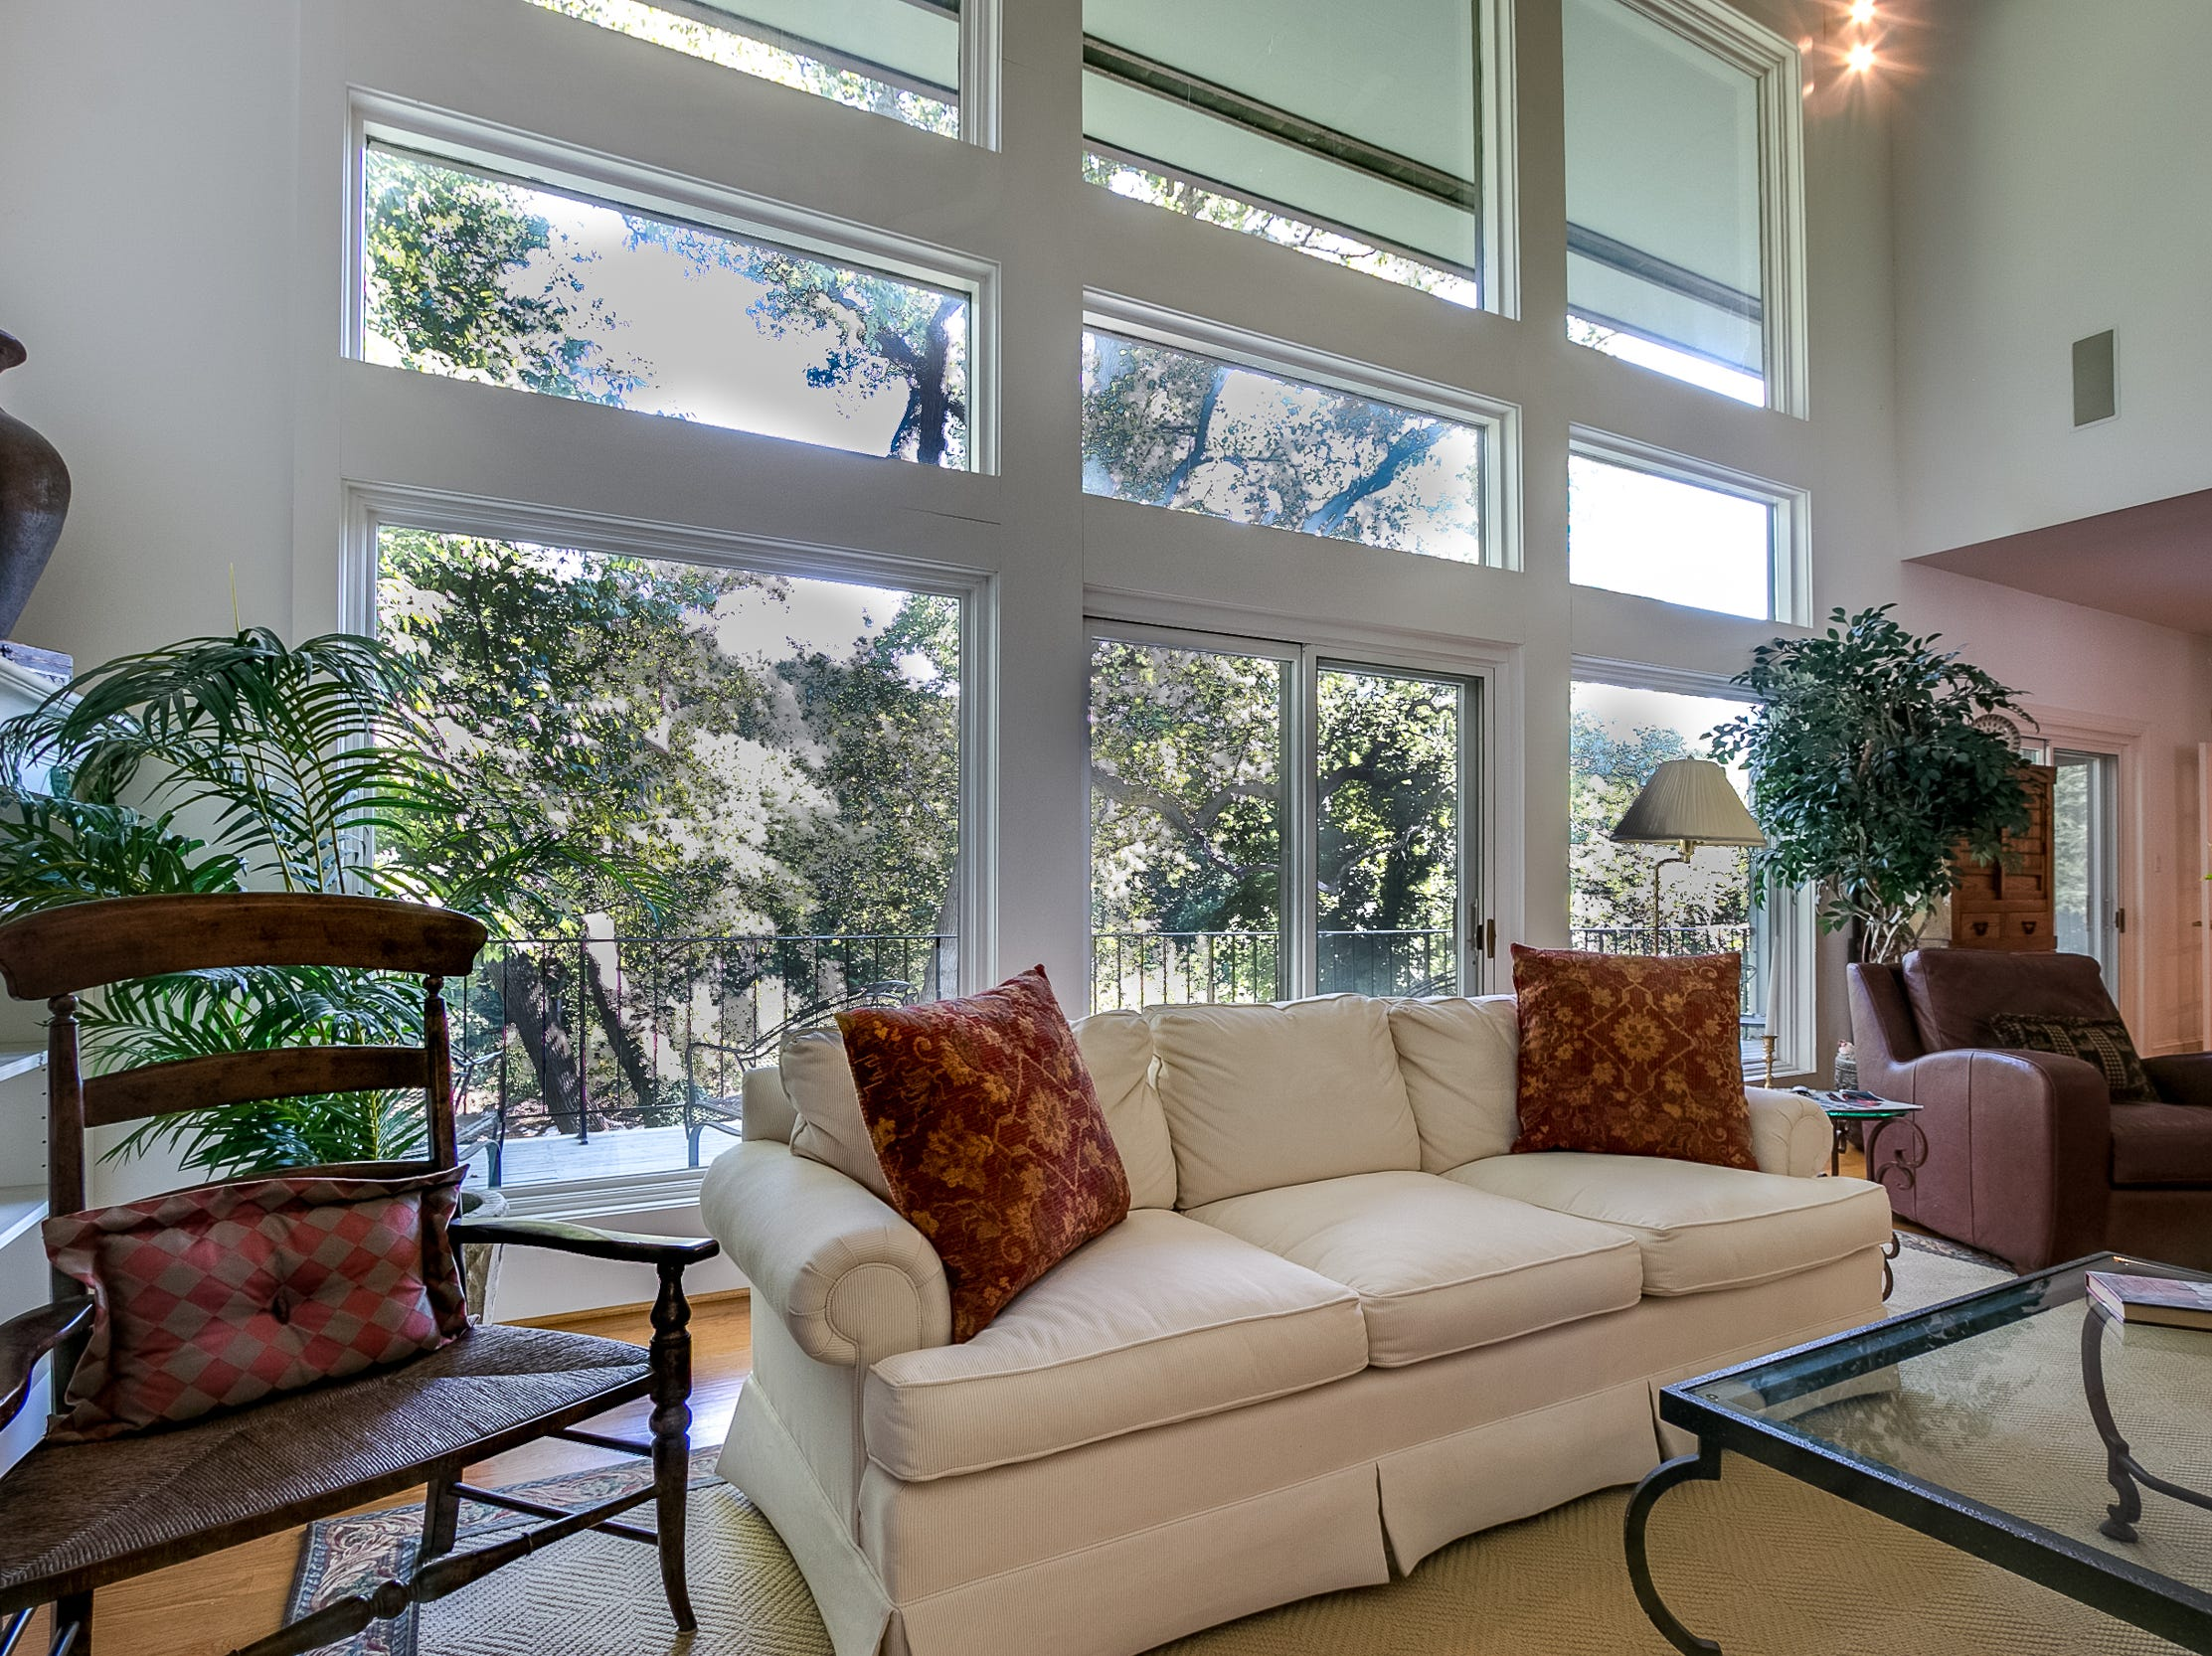 A wall of windows allows the outdoors into the living room at 7 Brandywine Falls Road in Wilmington.